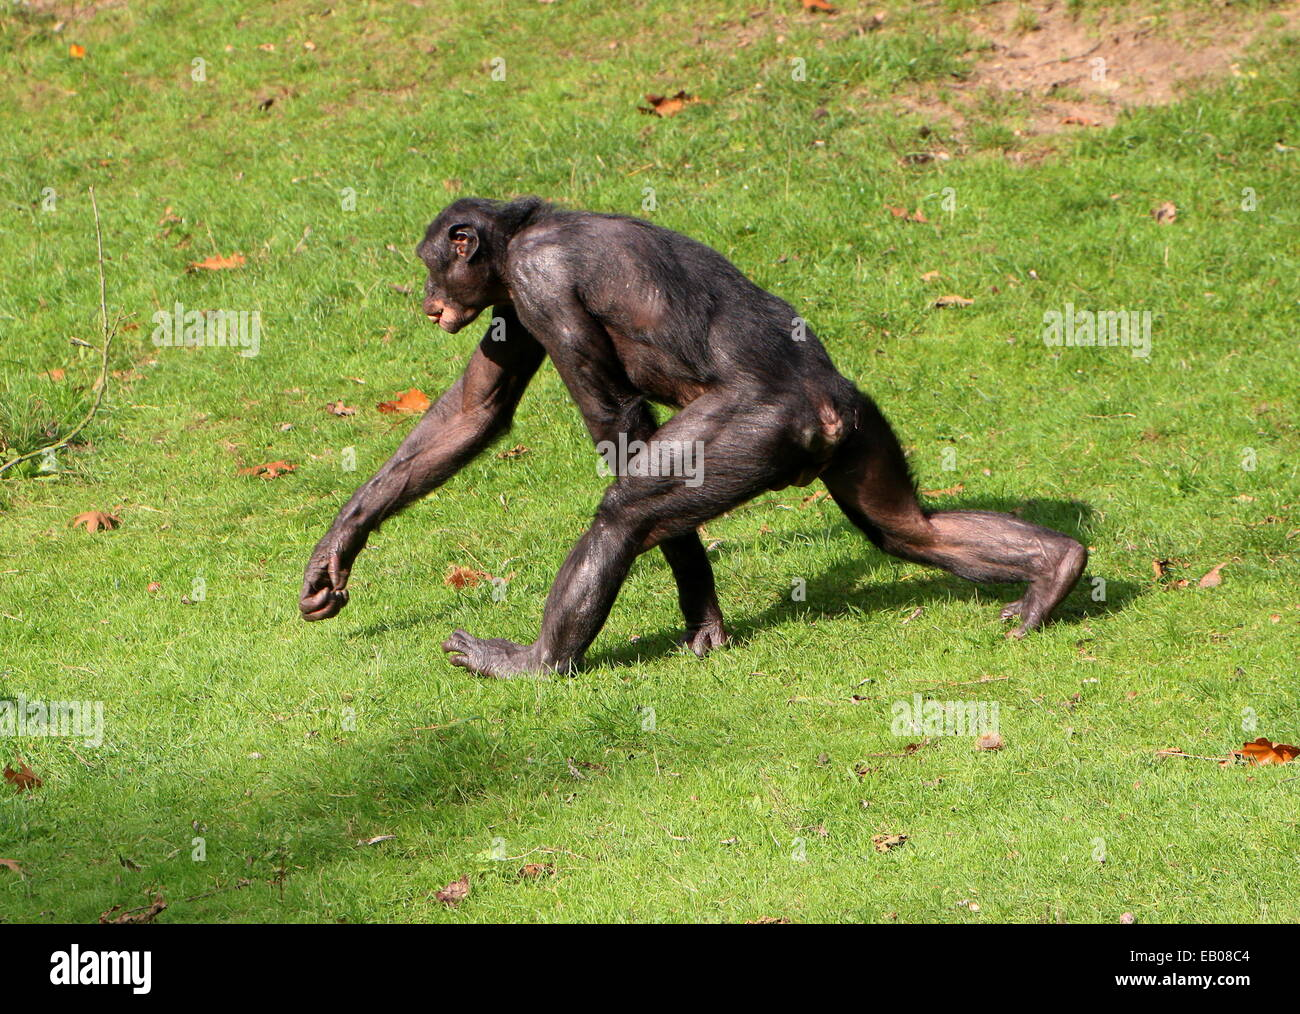 Fast-paced Bonobo or Pygmy Chimpanzee (Pan Paniscus) walking  in a natural setting - Stock Image